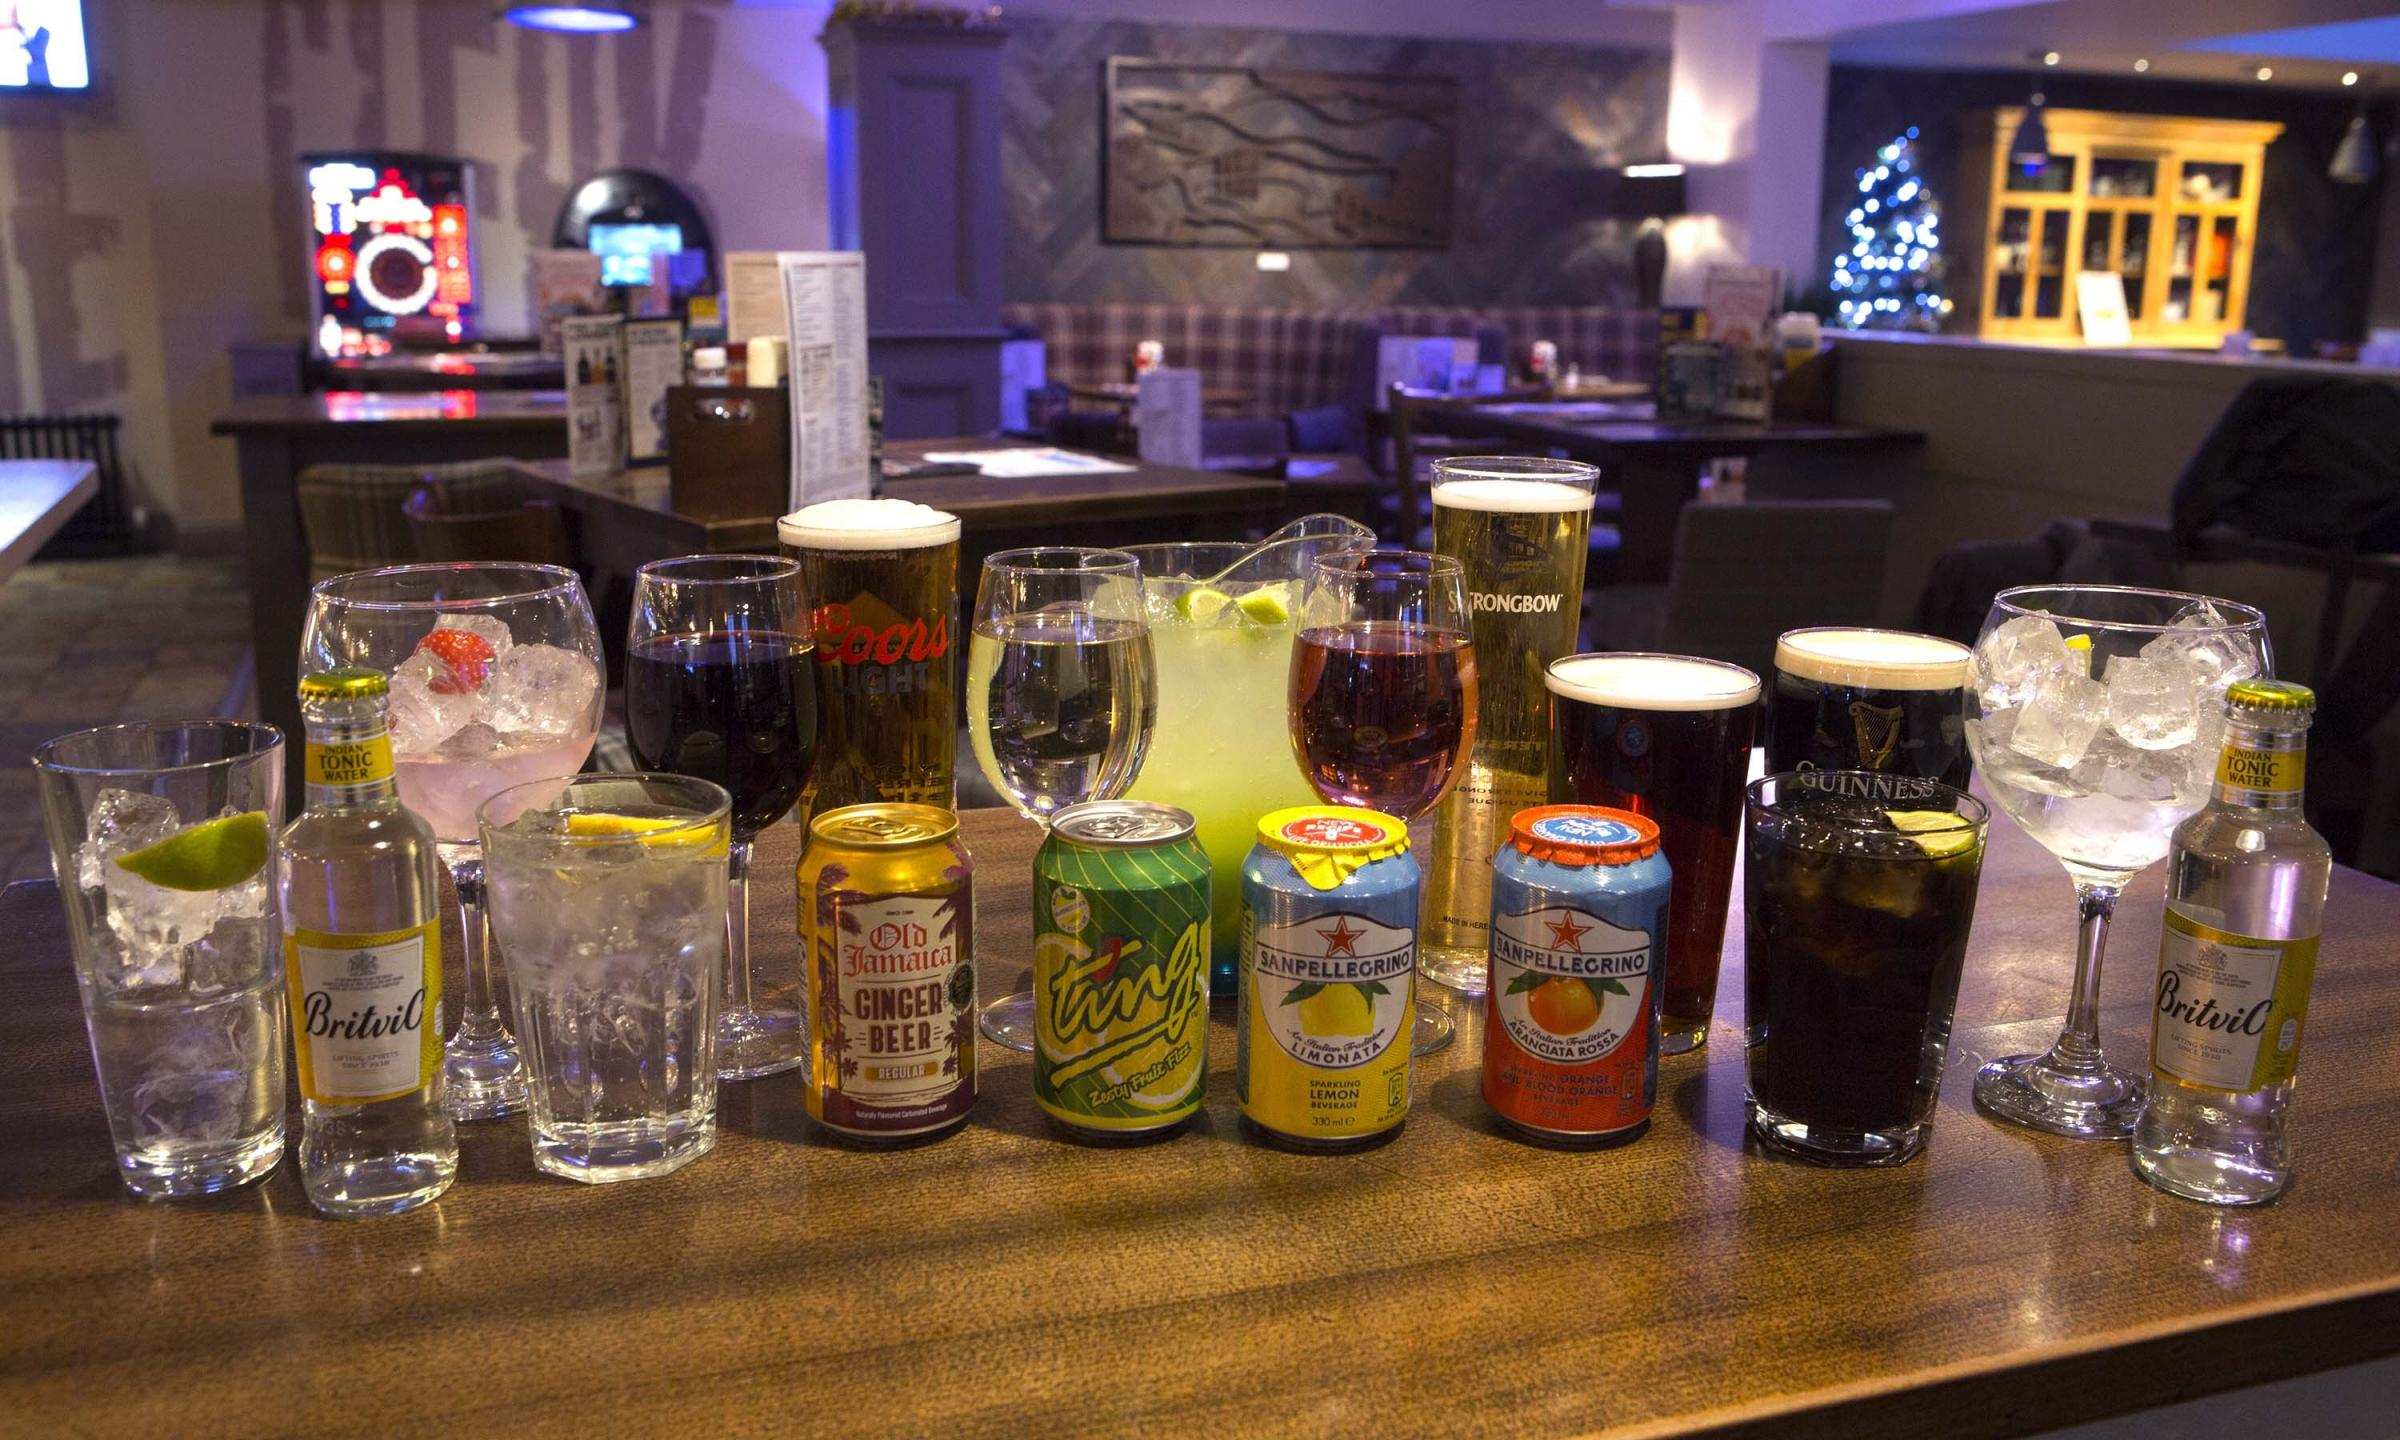 Wetherspoons January drinks offer